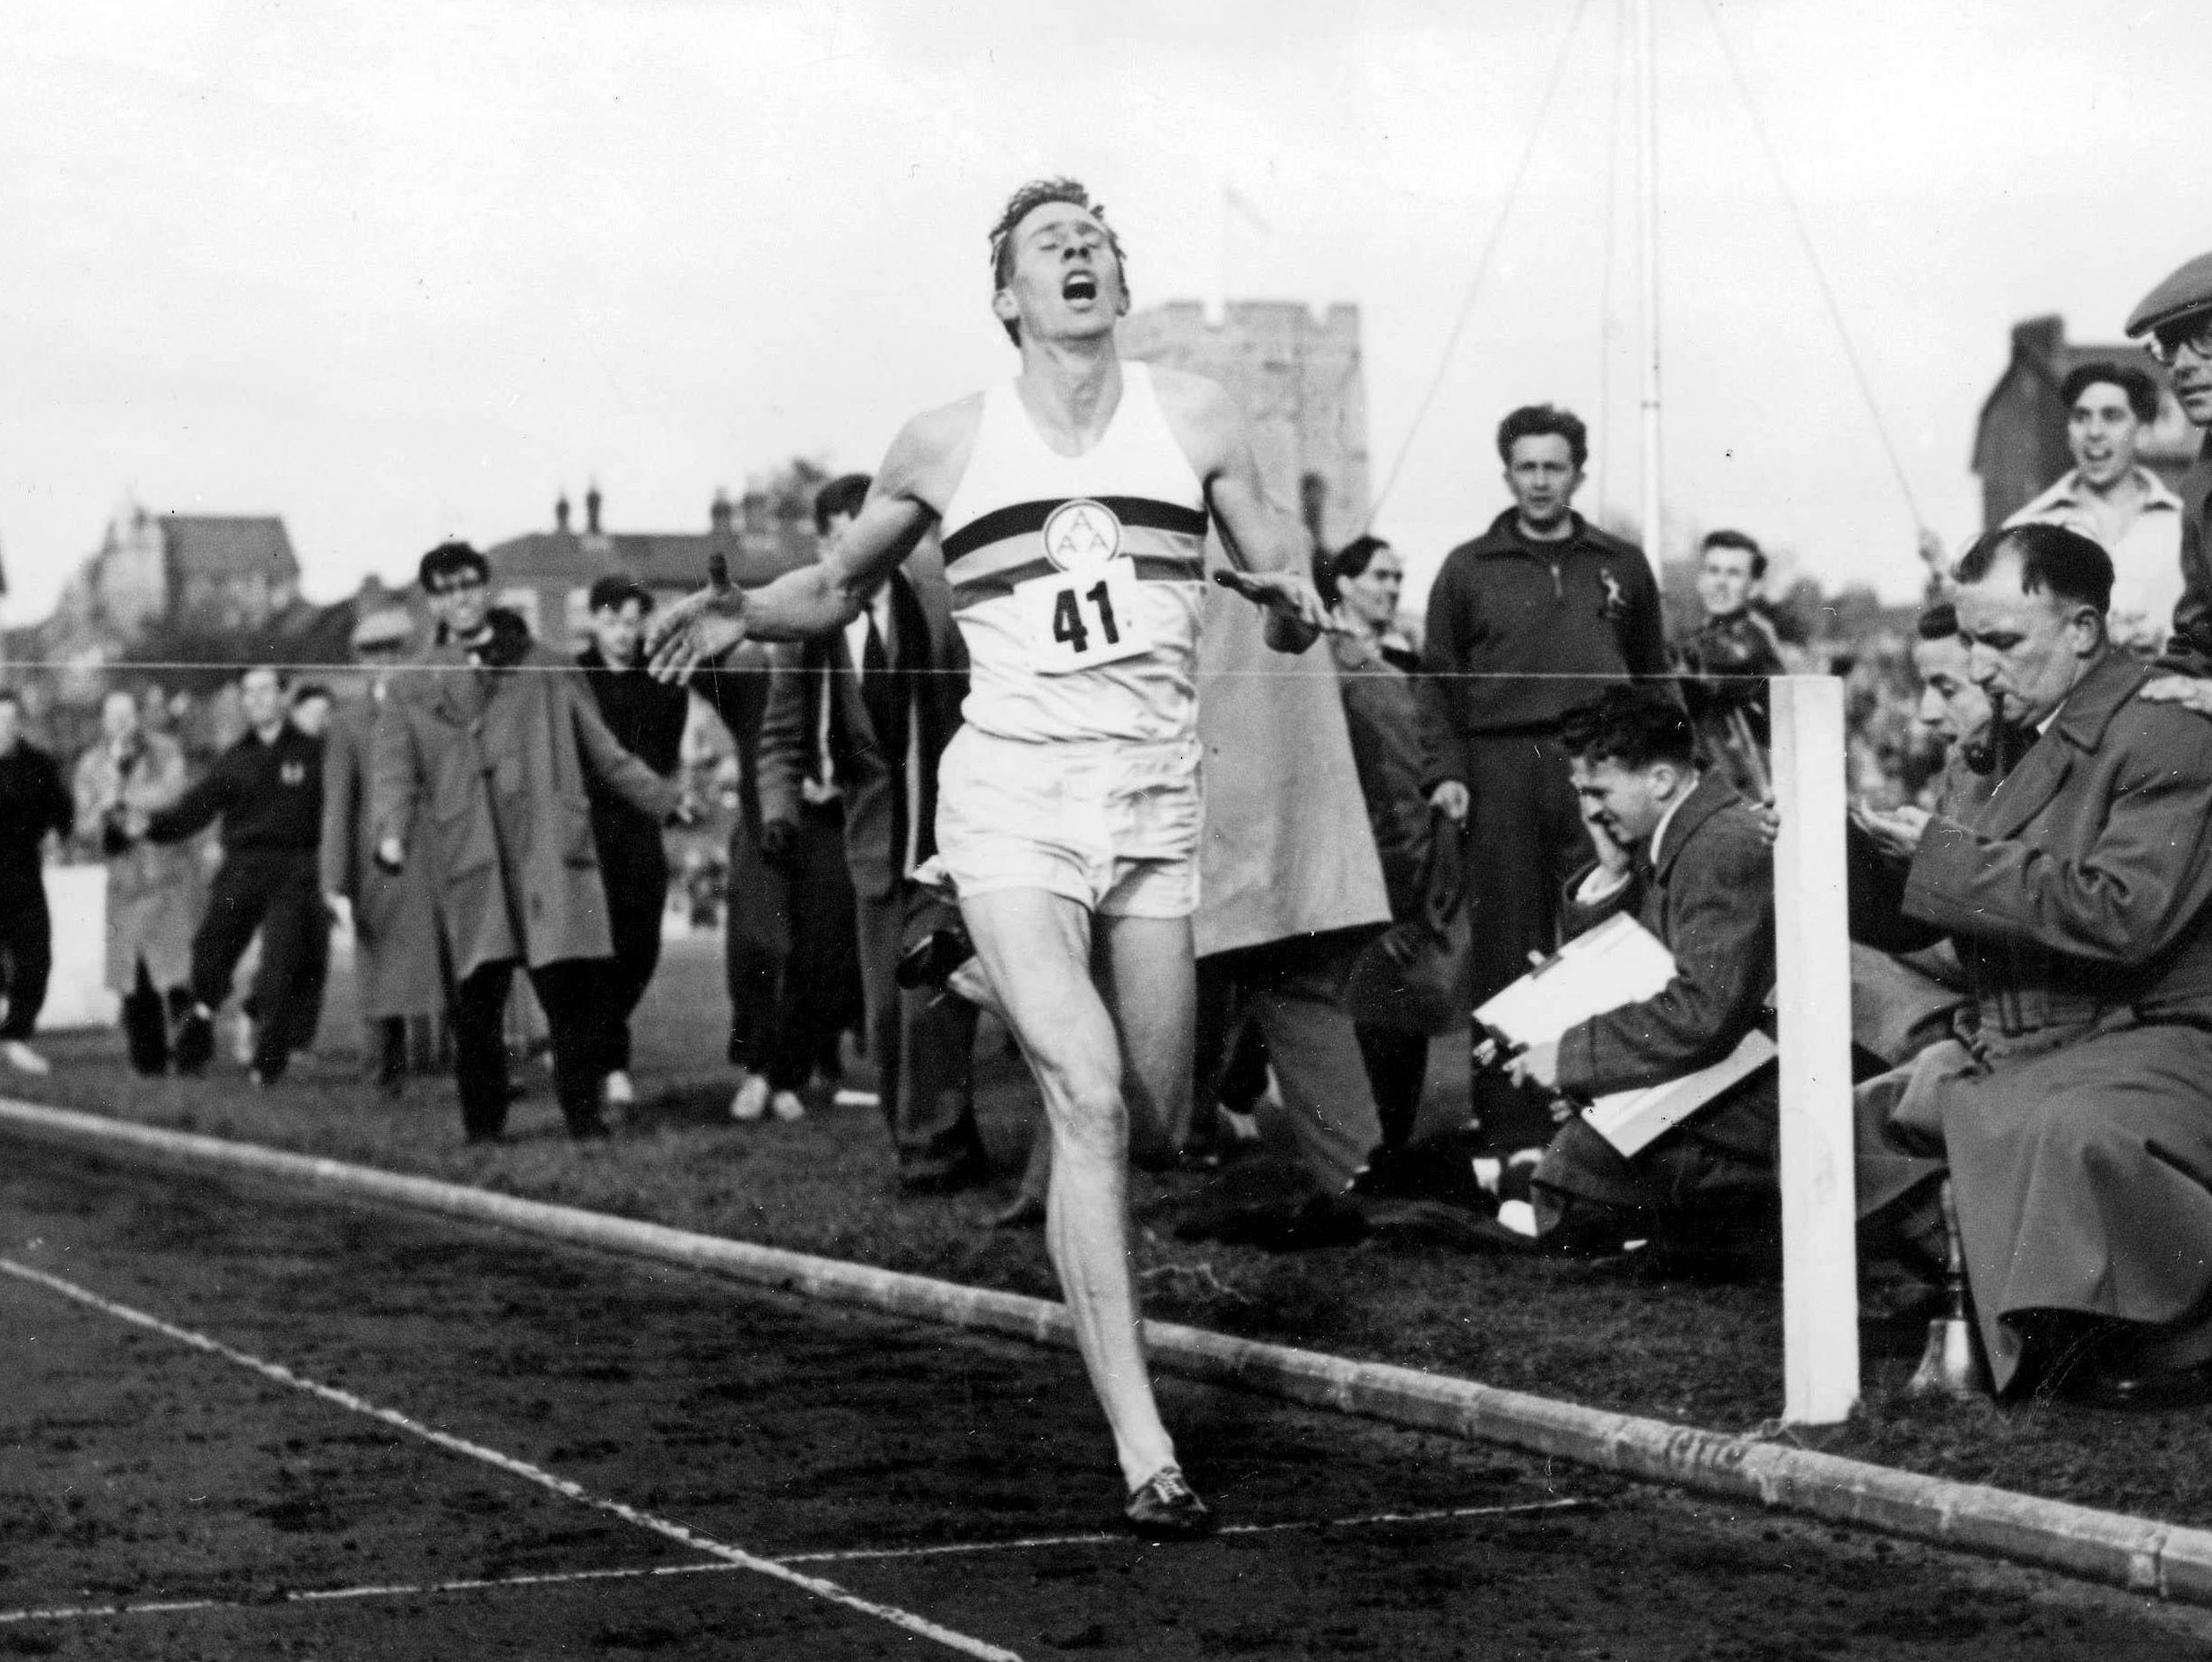 The moment Roger Bannister broke the 4 minute mile - completing his run in 3mins 59secs